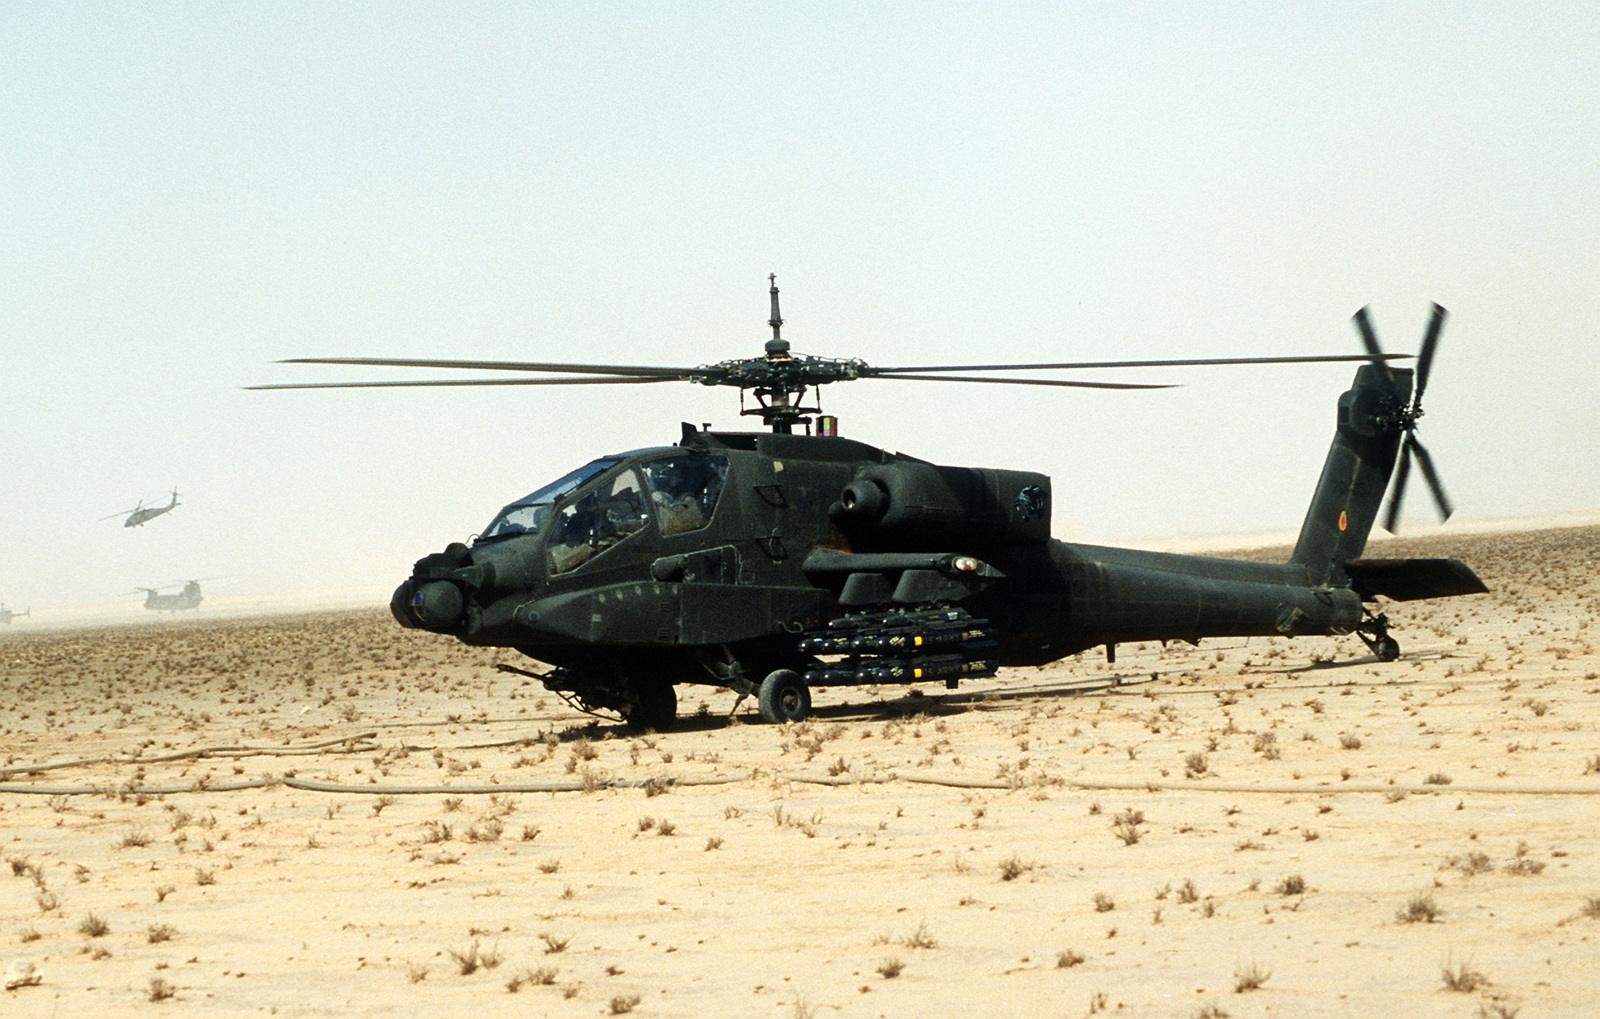 An AH-64A Apache anti-tank helicopter of the XVIII Airborne Corps, armed with AGM-114A Hellfire anti-tank missiles, is prepared for a mission during Operation Desert Storm